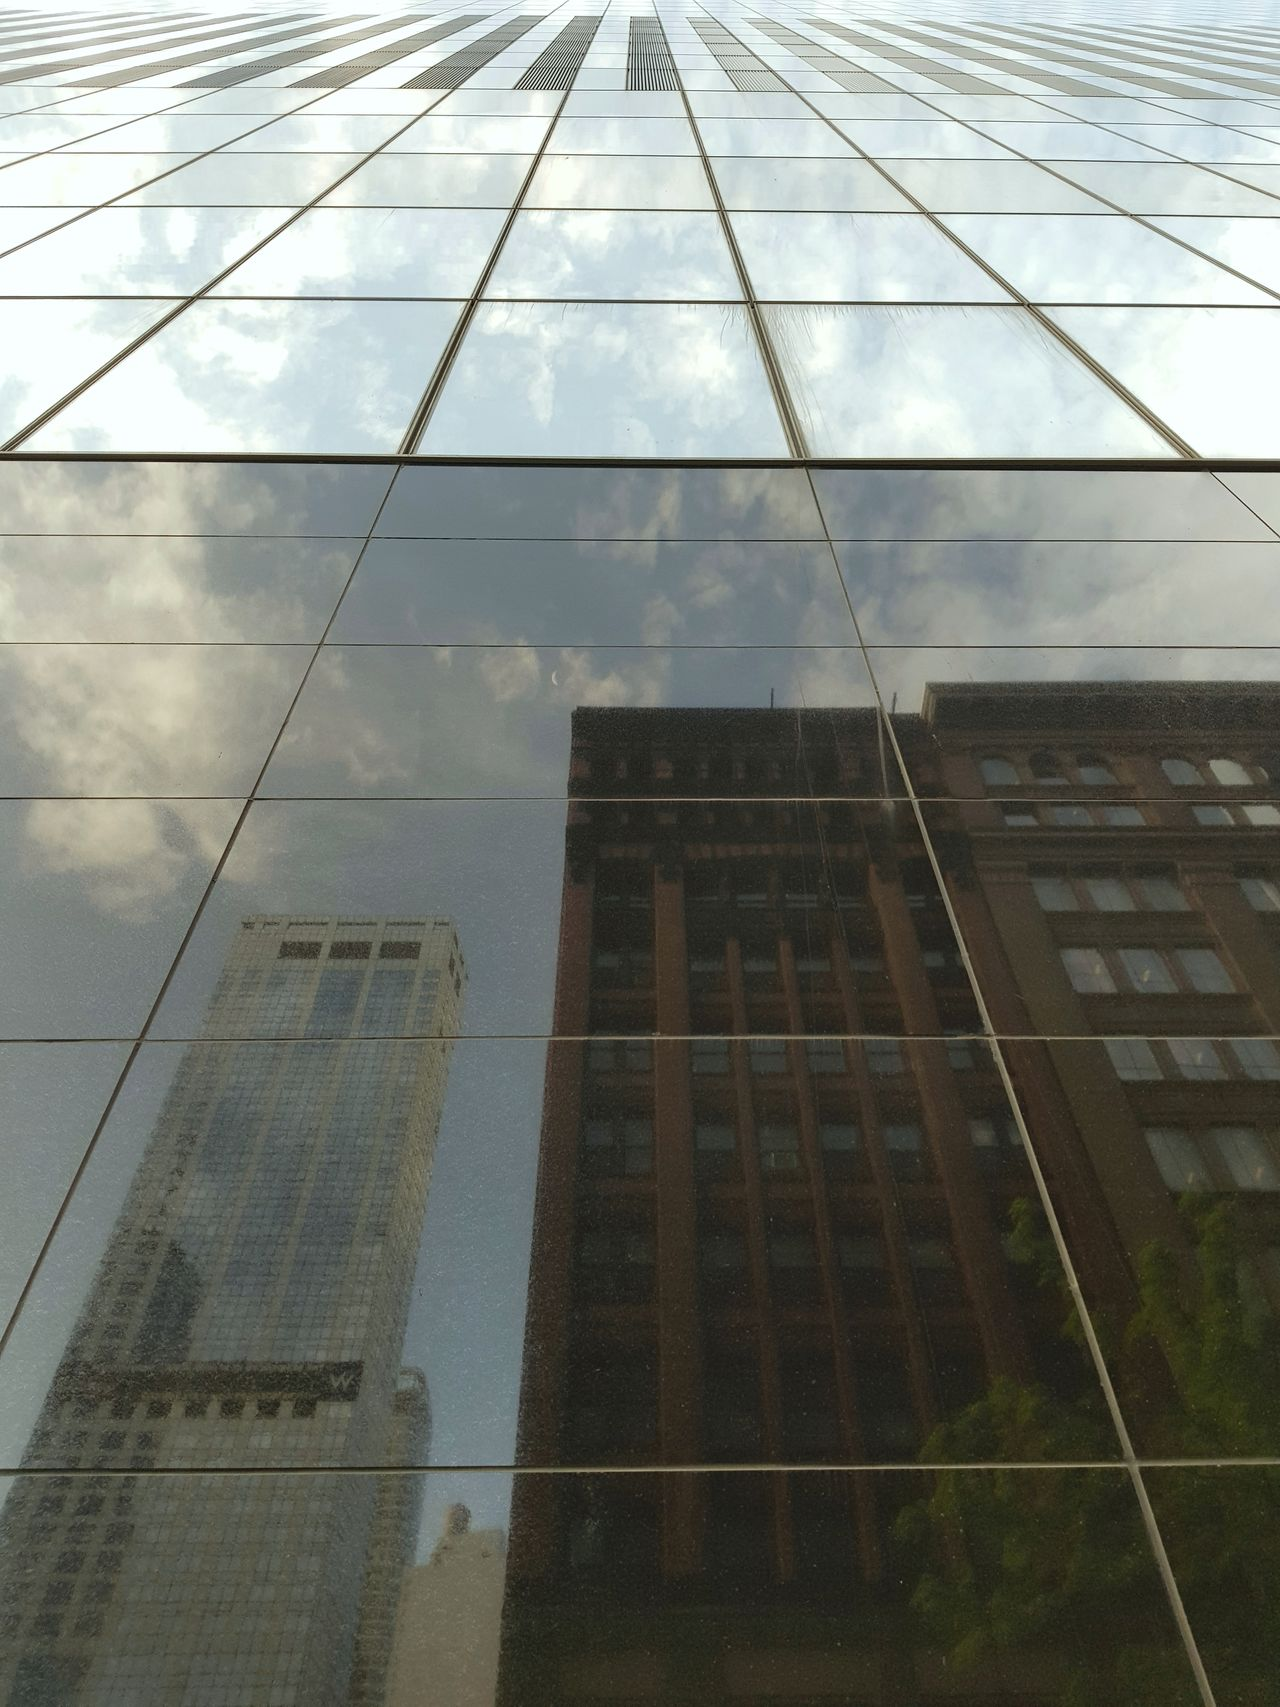 Built Structure Window Building Exterior Architecture Sky No People City Architecture Metro City New York New York City My Point Of View My Phone Camera Cloud - Sky Mirrored Image Mirroring Mirroreffect Mirrorimage Mirrorshot Mirrored Reflection Reflection Photography Refelections Refelction